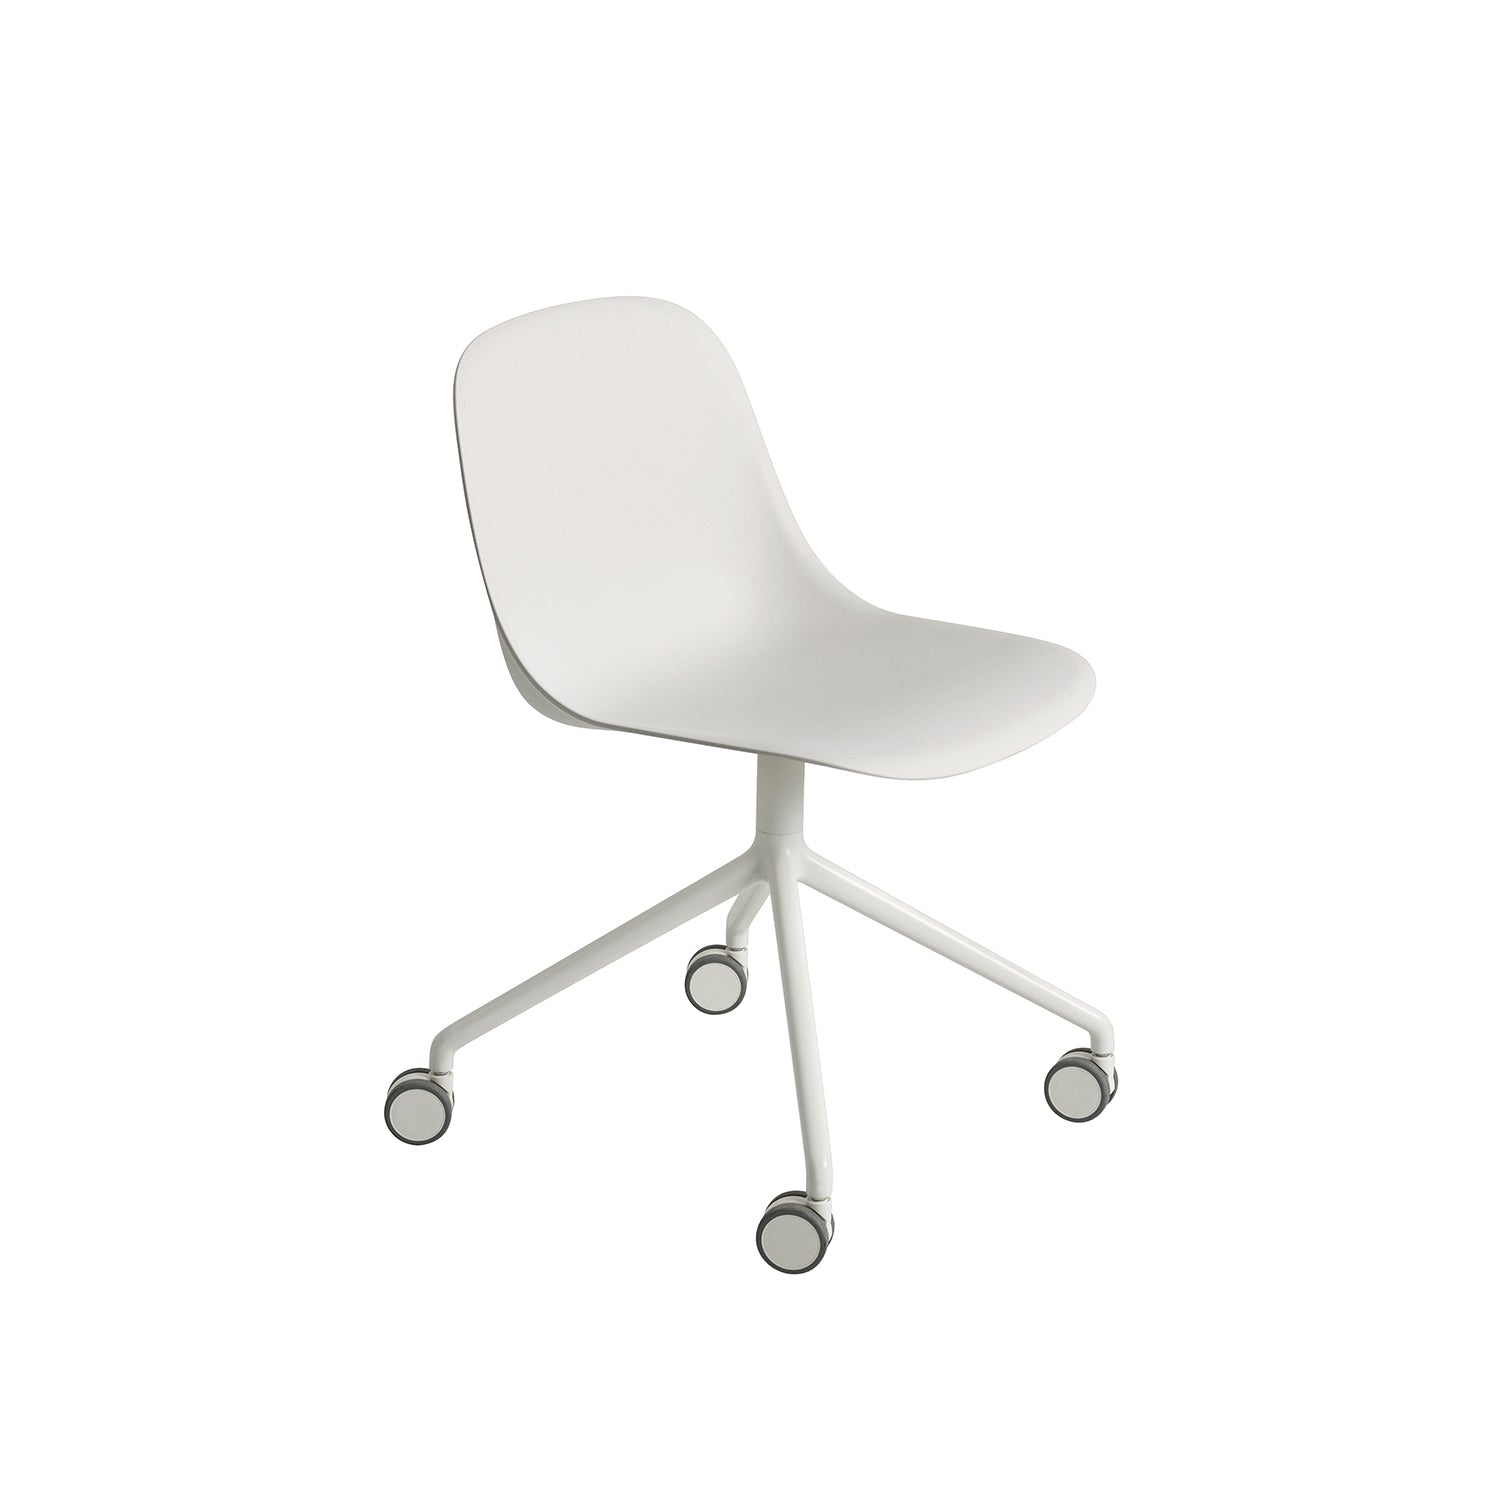 Fiber Side Chair: Swivel Base With Castors: Natural White